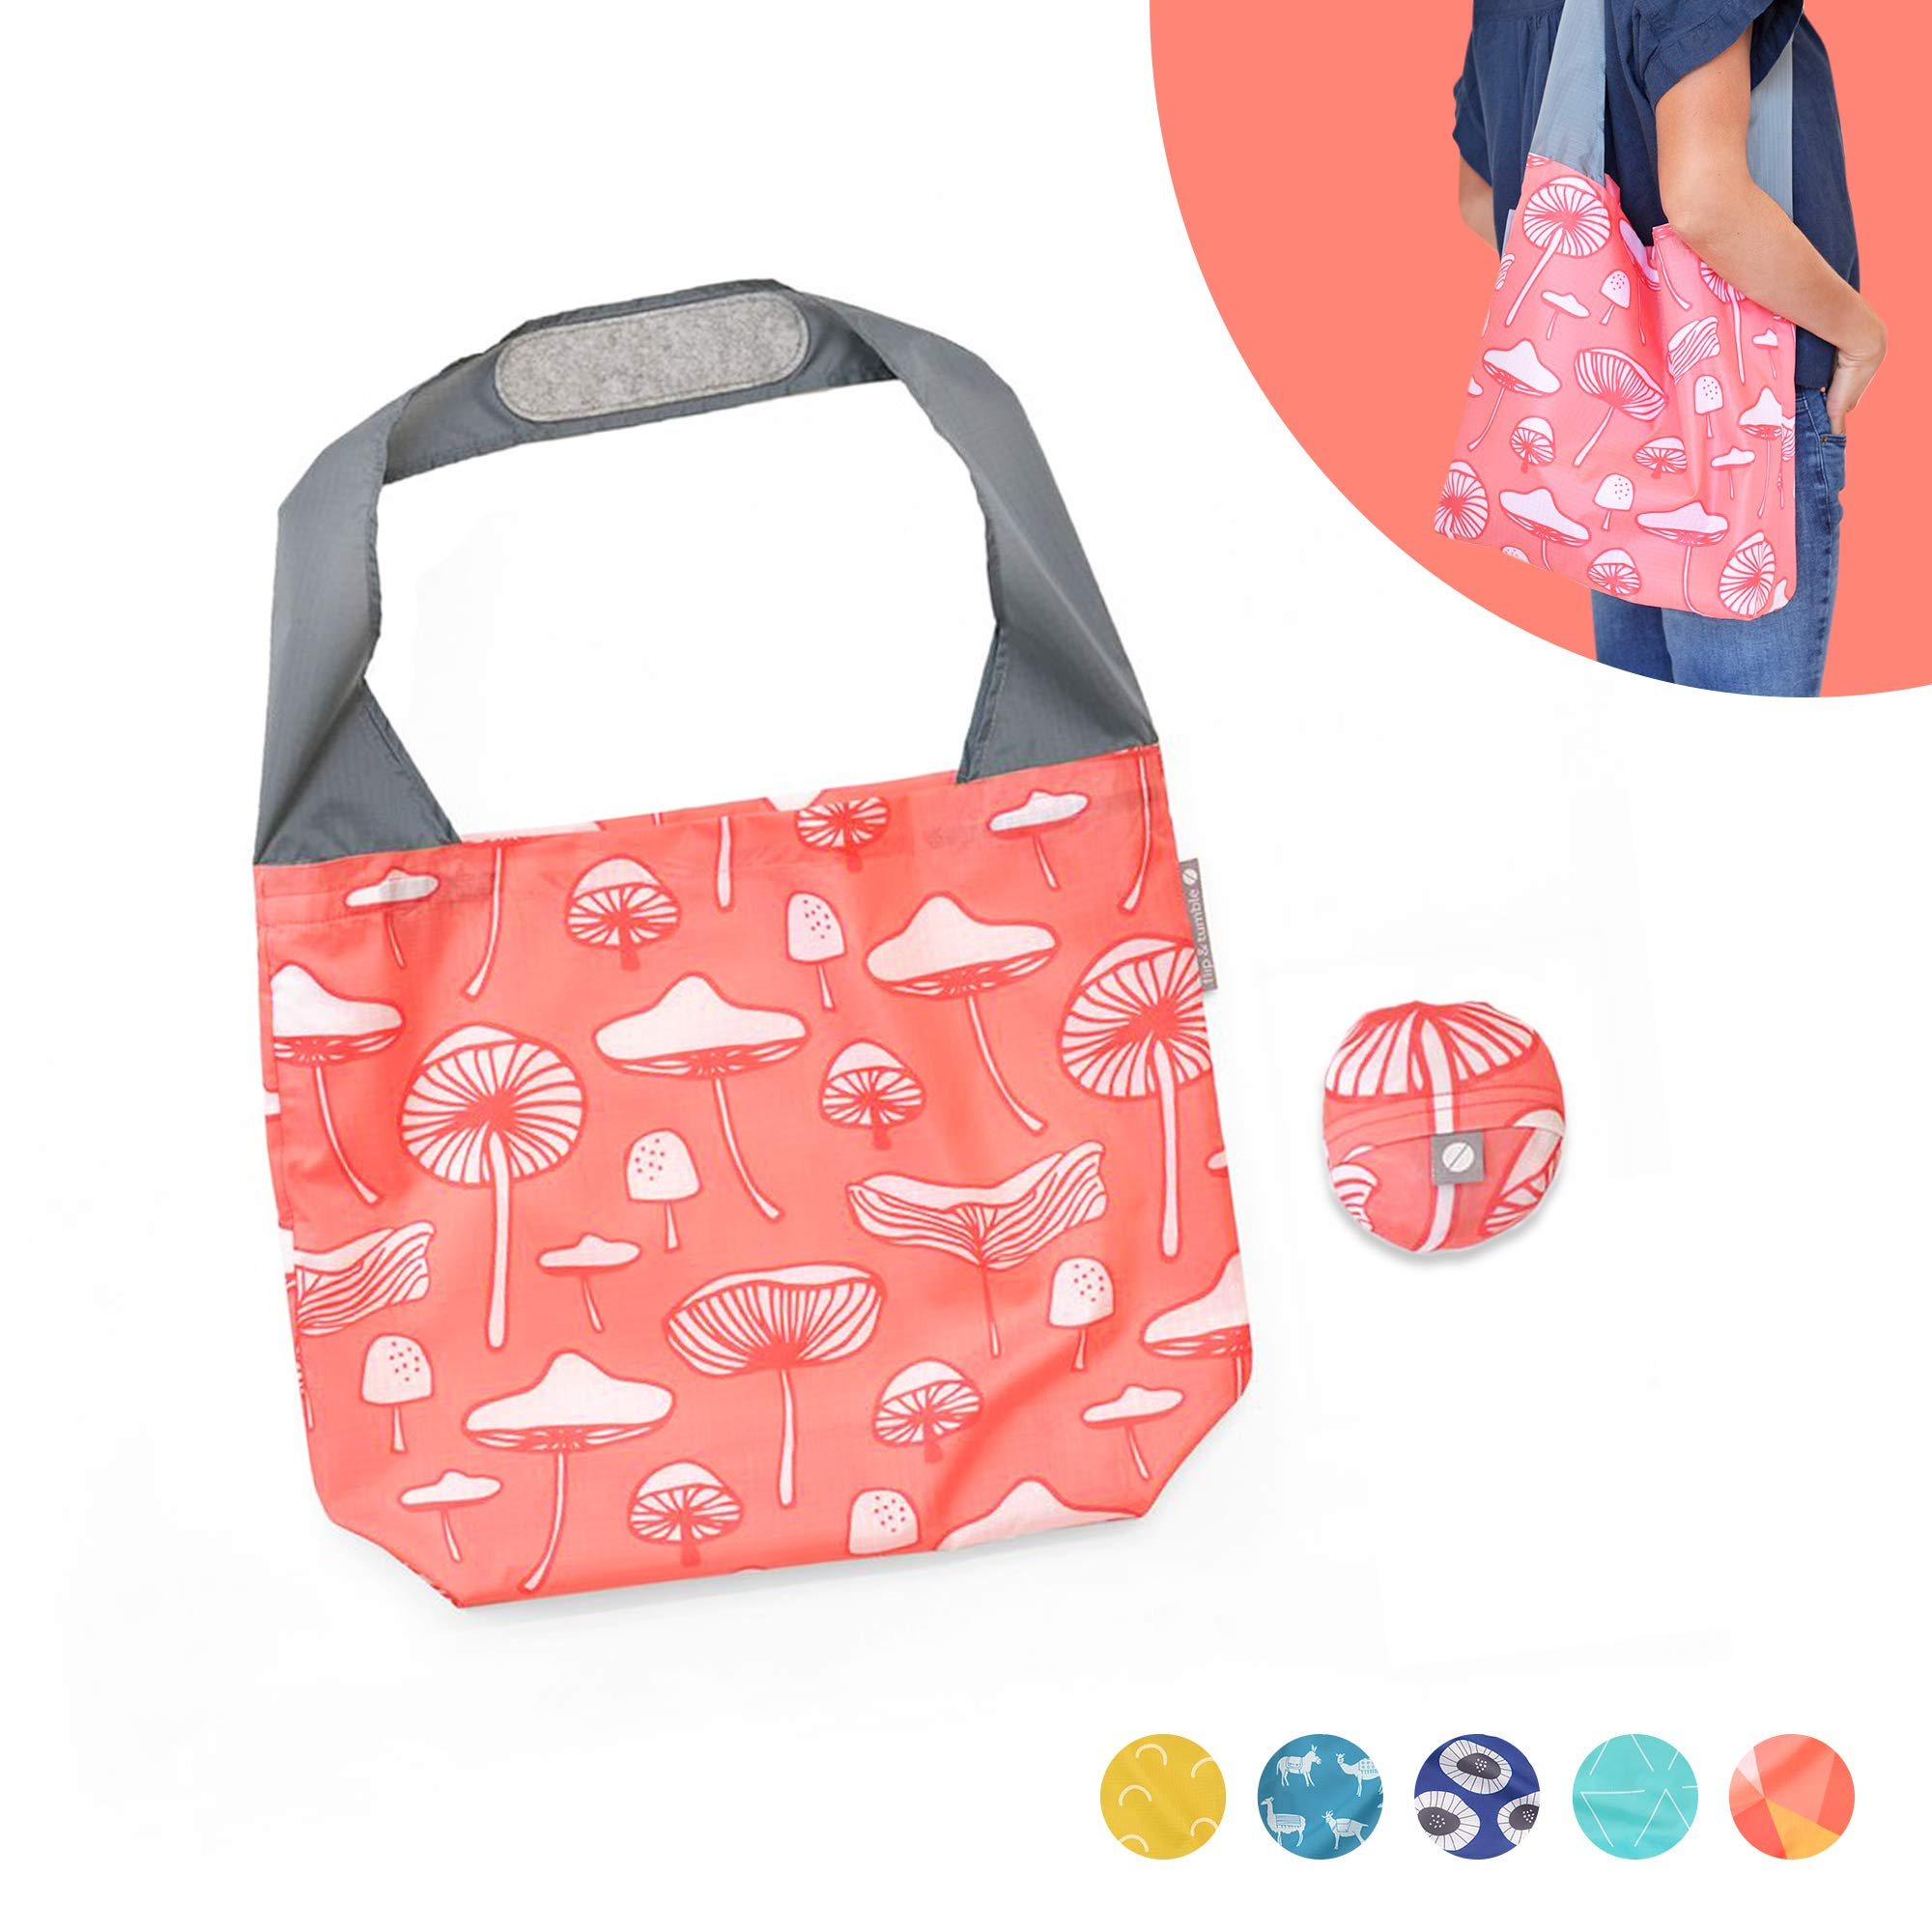 Mix Assorted Design and Colors 5 Pcs Grocery Multi Purpose Reusable Bags